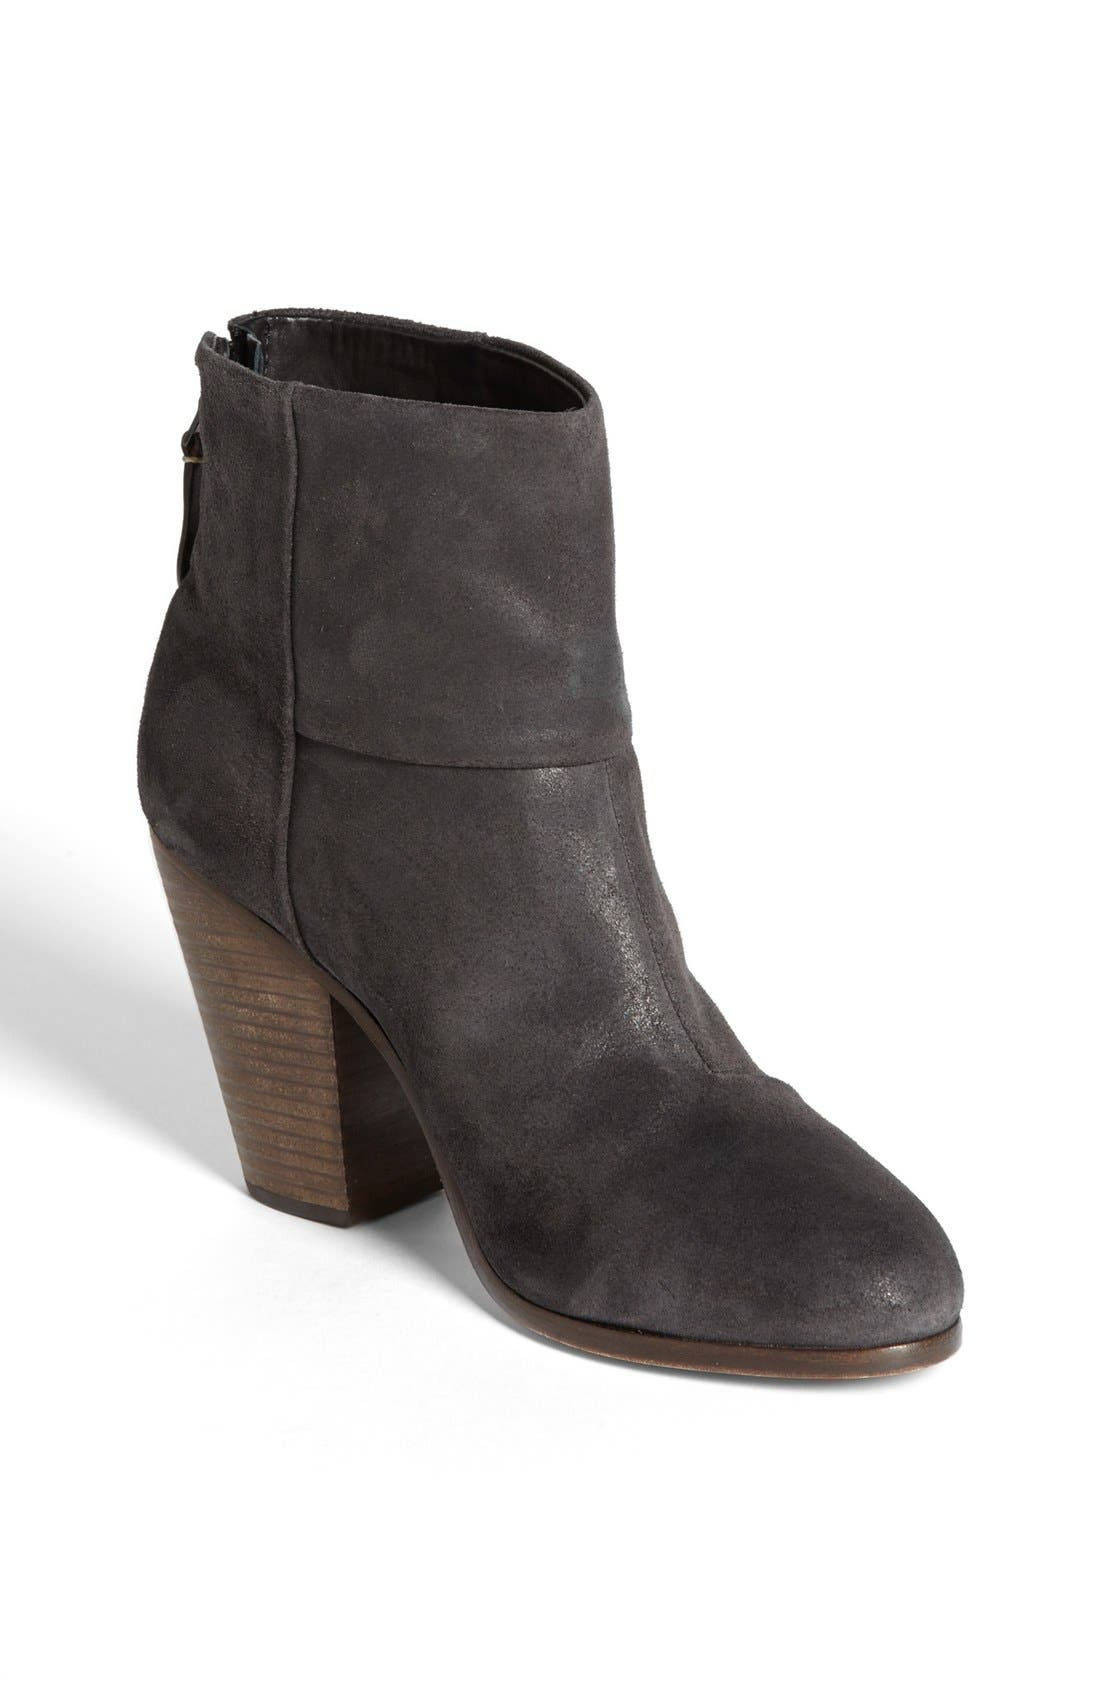 Main Image - rag & bone 'Newbury' Bootie (Women)